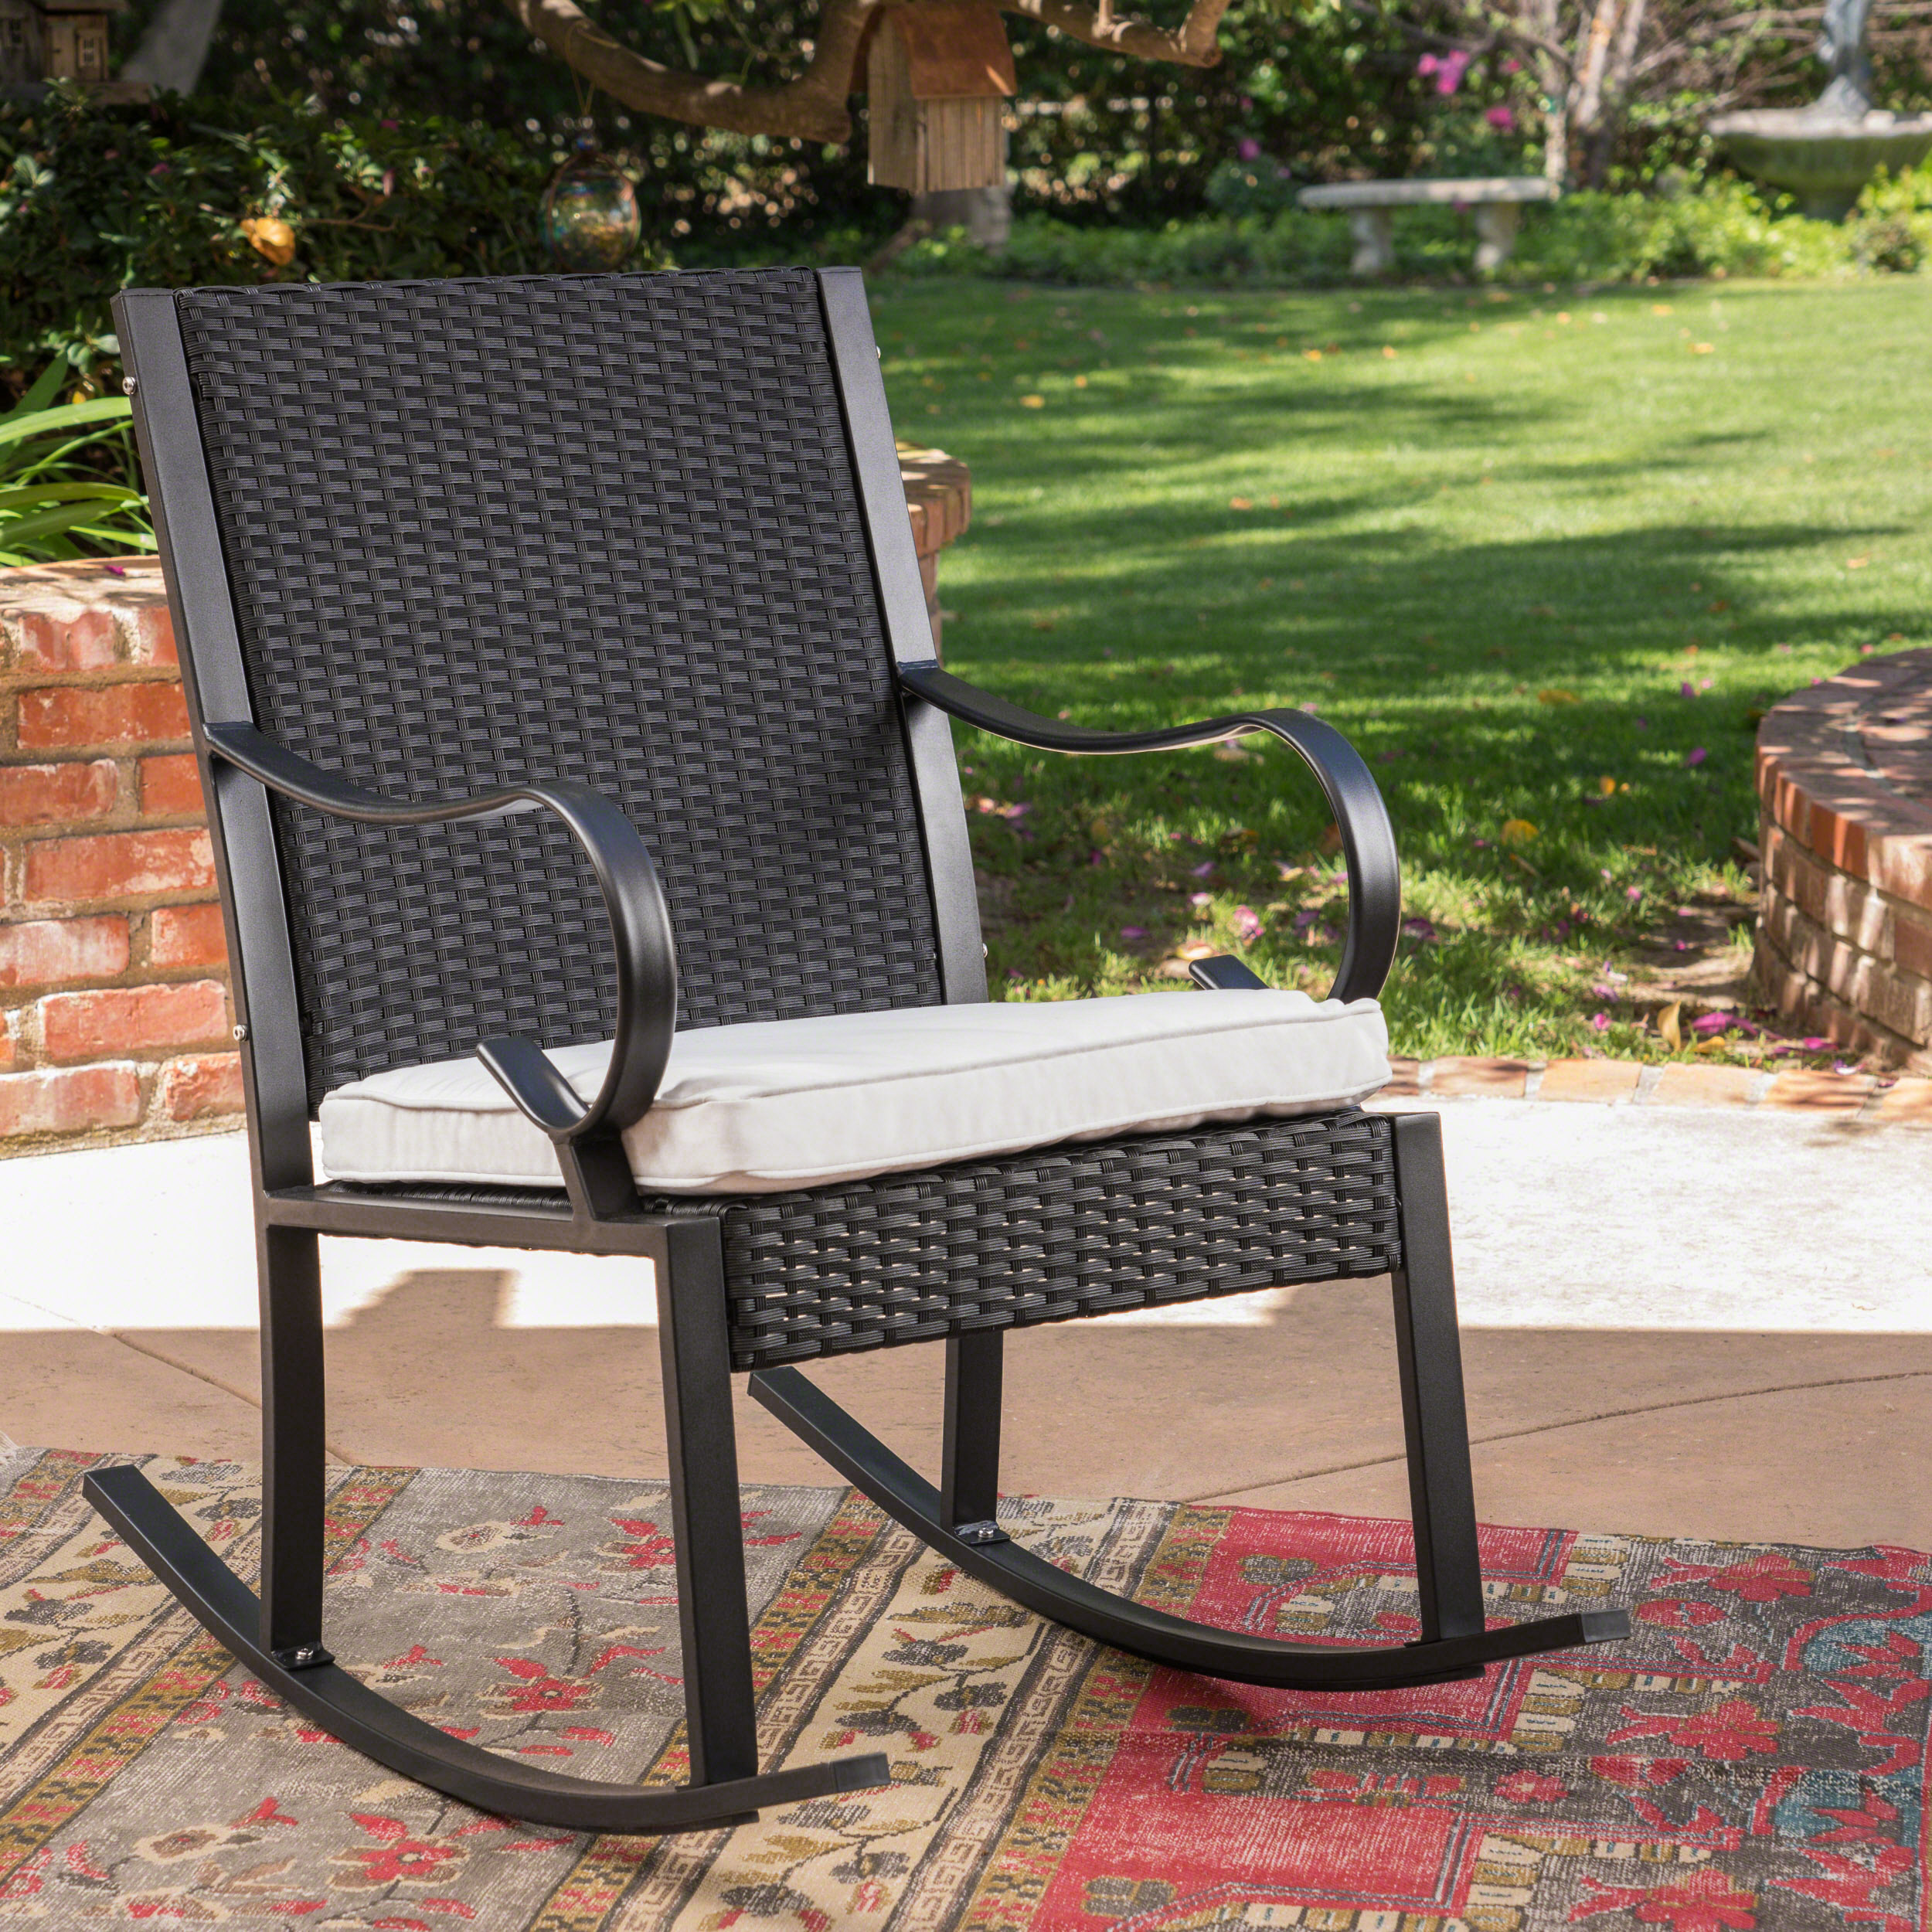 Hayden Outdoor Wicker Rocking Chair with Cushion, White,Black